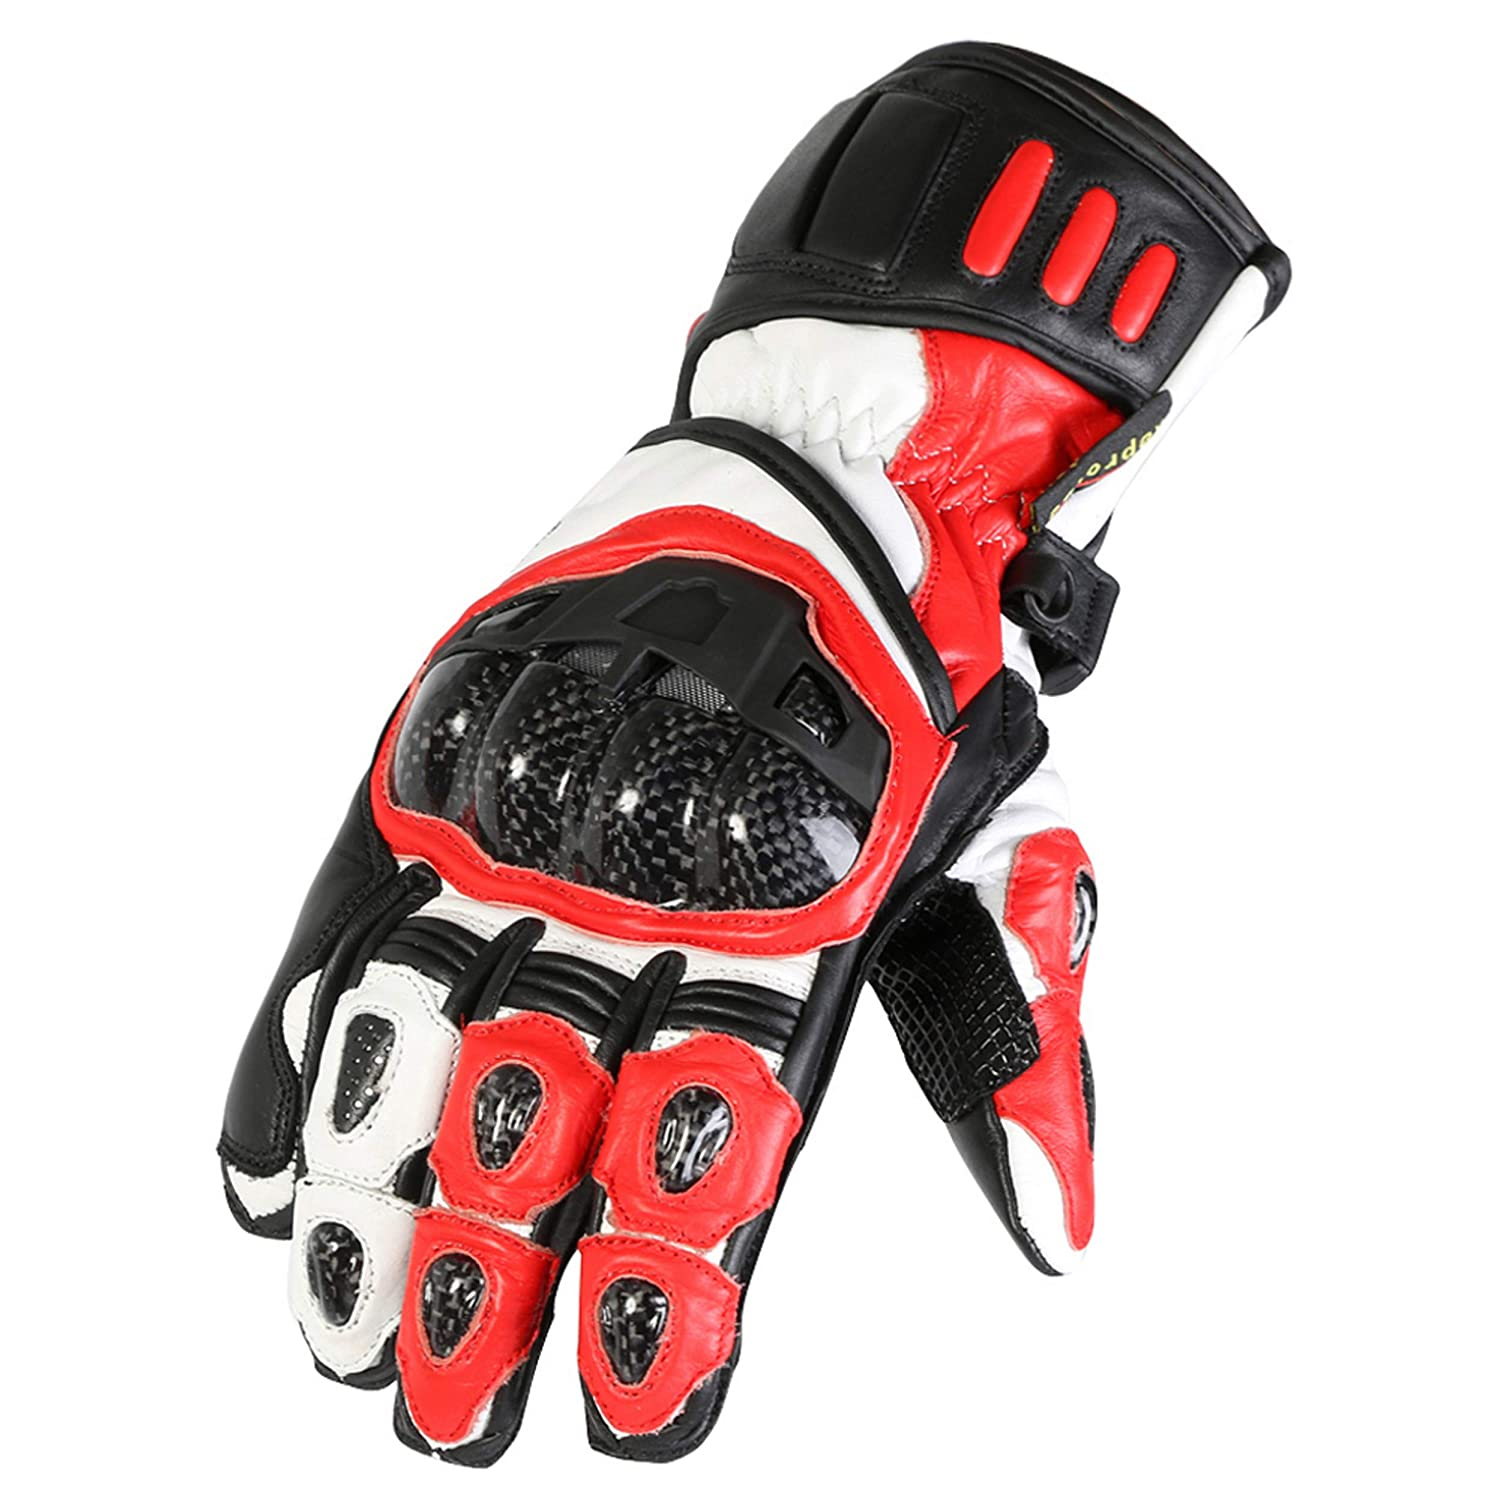 Texpeed Red /& Black Protective Leather Motorbike//Motorcycle Gloves Sizes S to 2XL